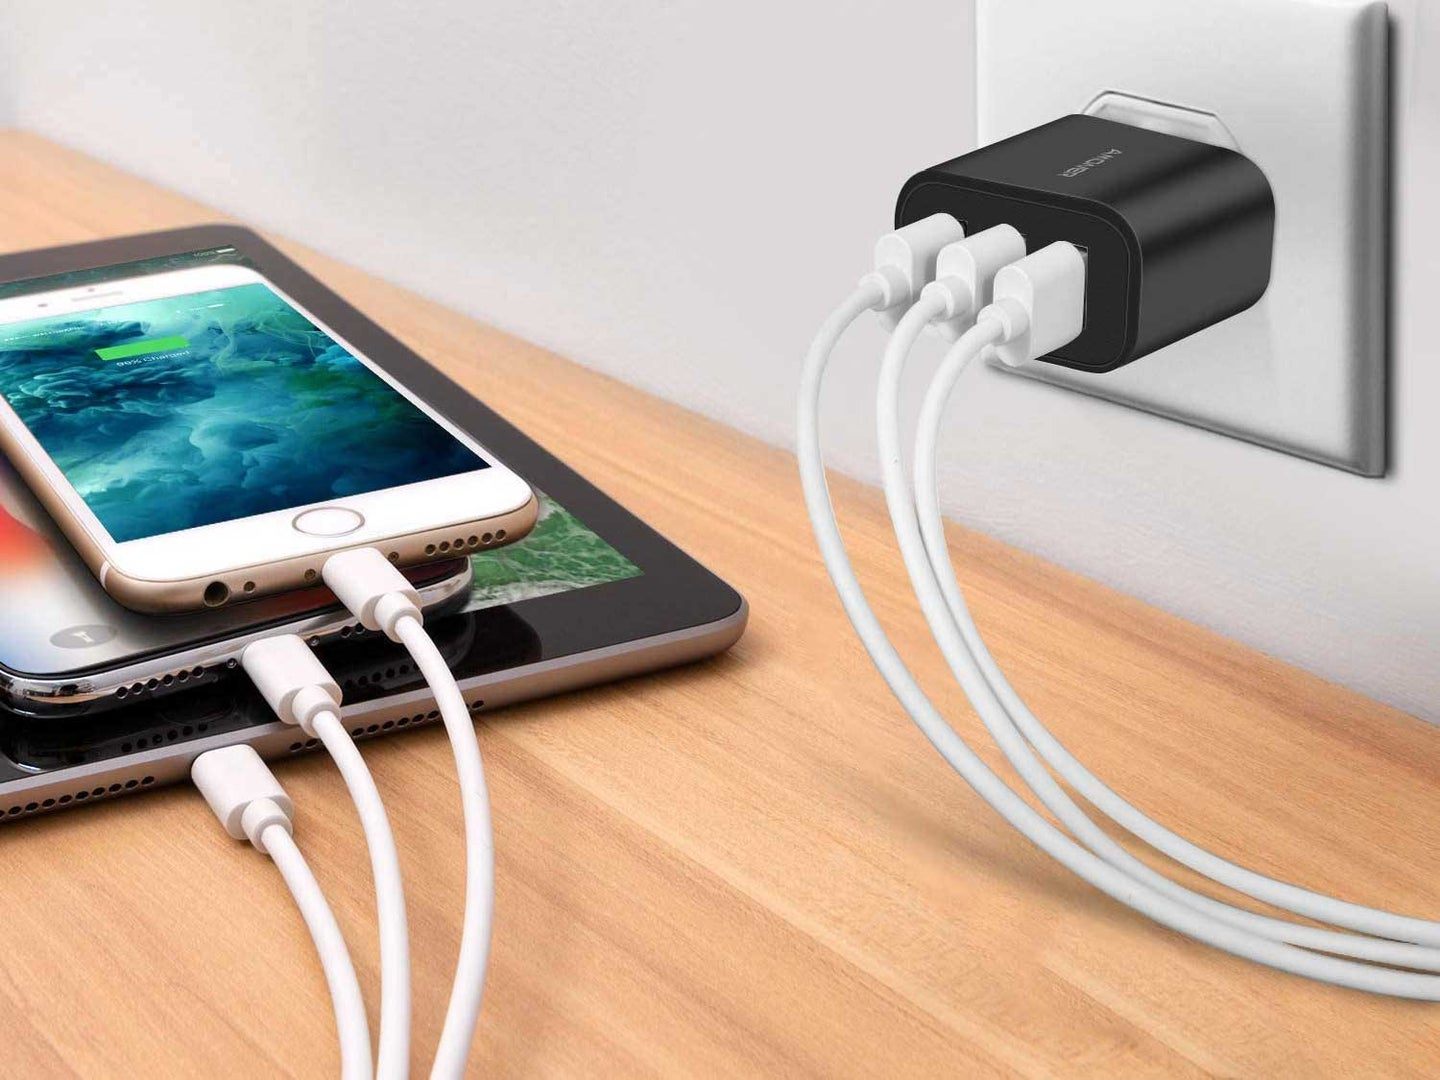 Charging phone and tablet with USB wall charger.